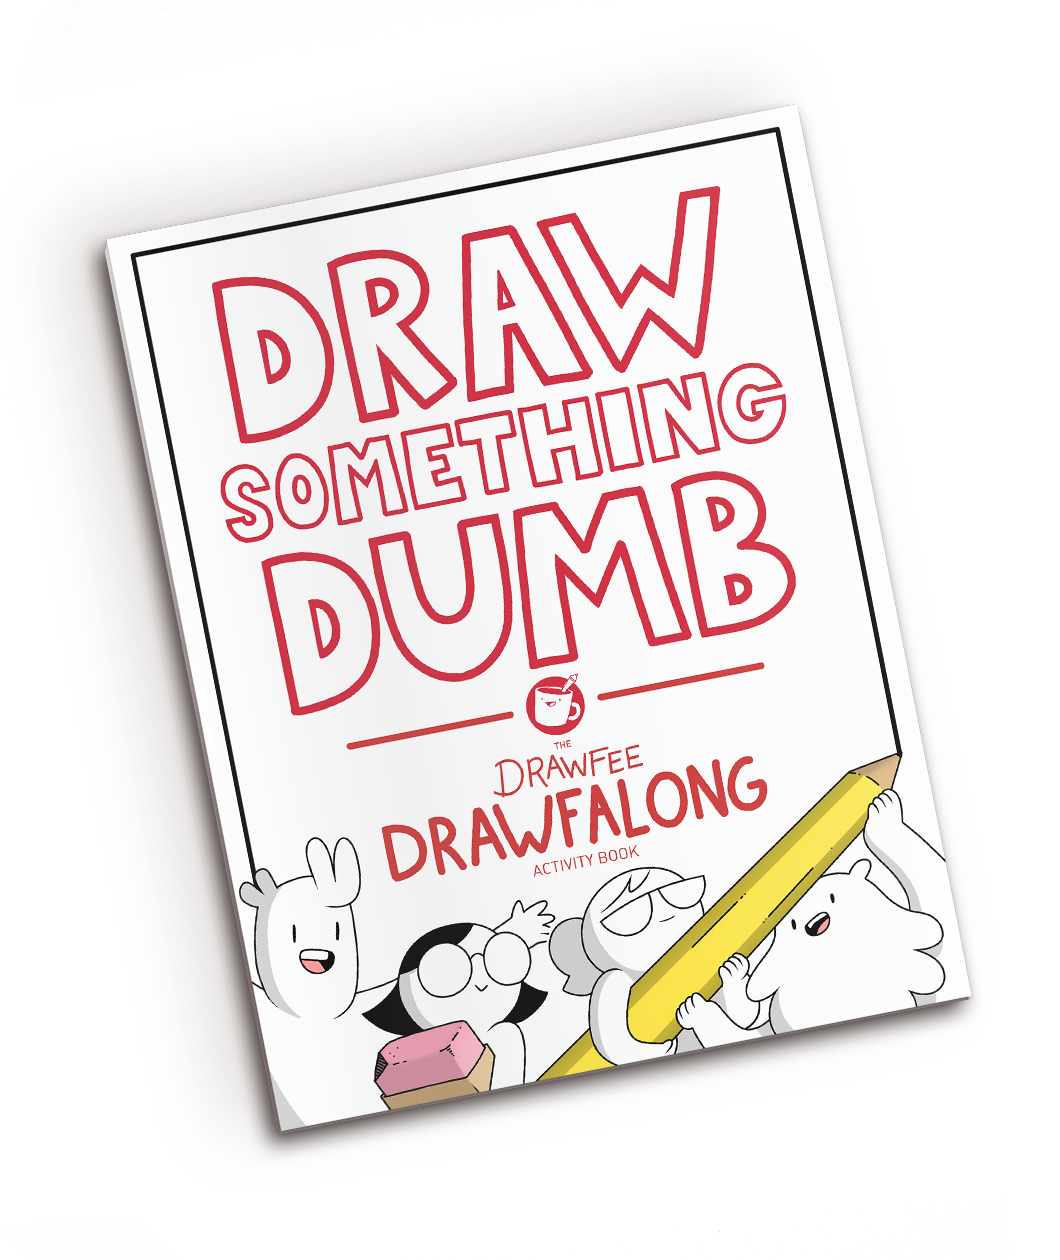 Draw Something Dumb: The Drawfee Drawfalong Activity Book